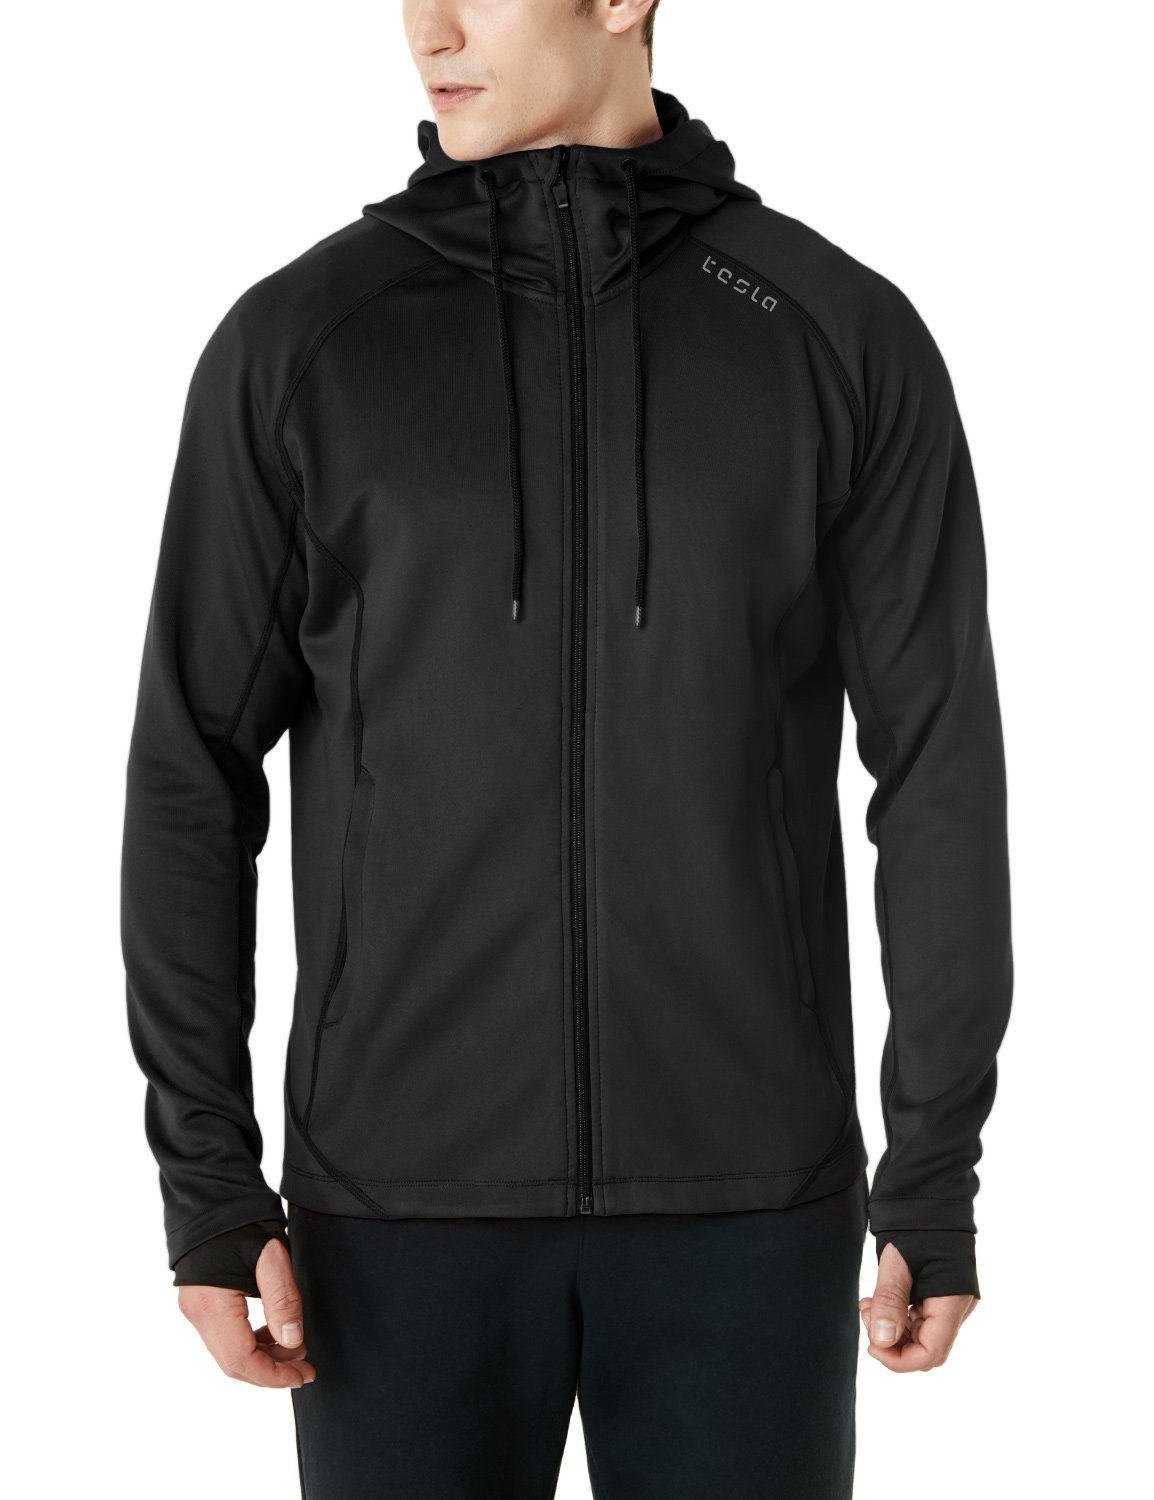 TSLA Men's Performance Active Training Full-Zip Hoodie Jacket